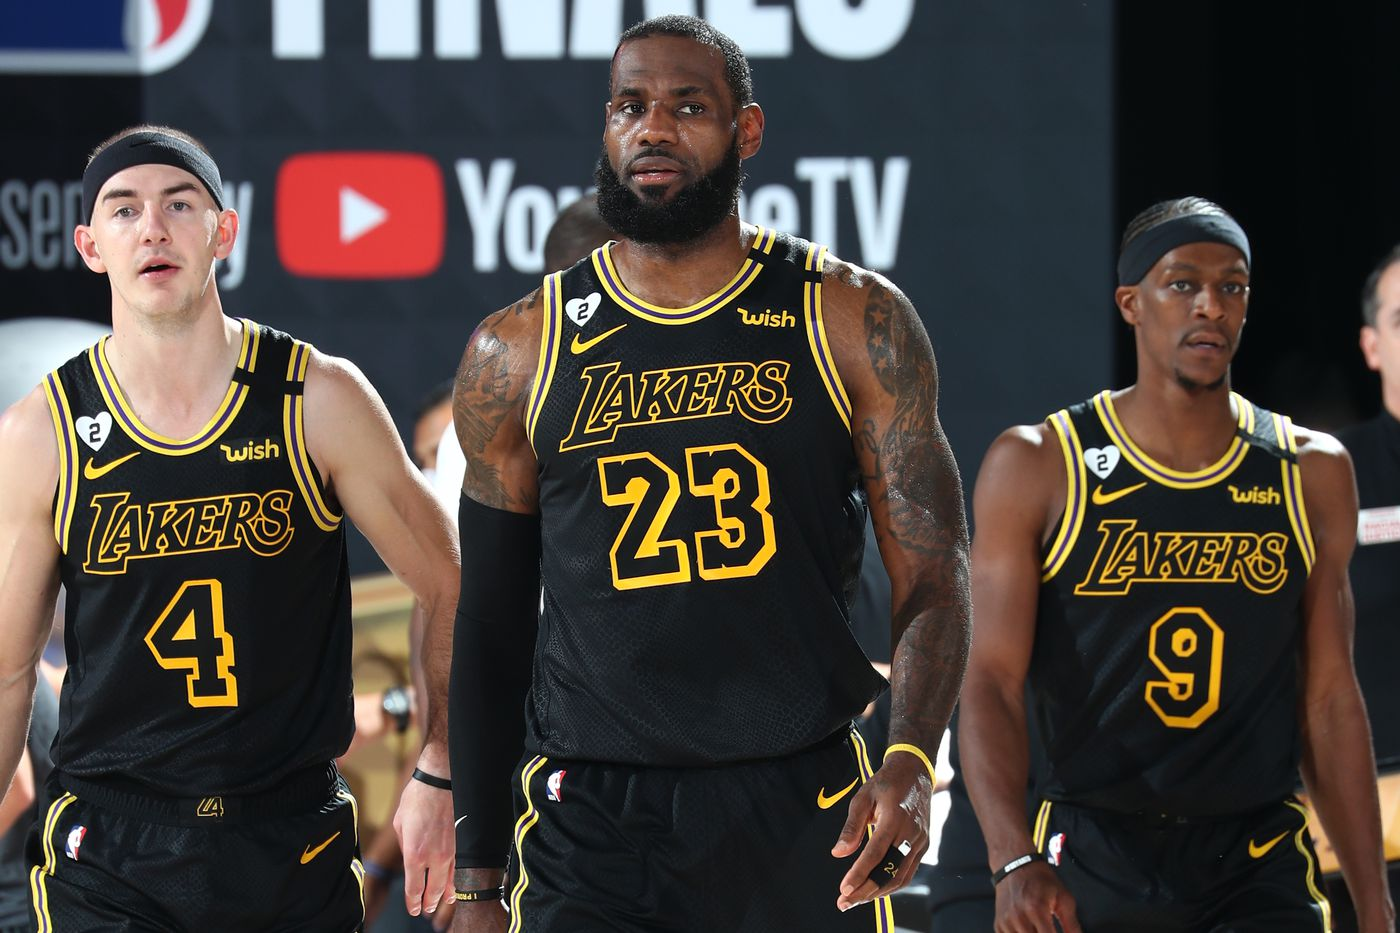 Nba Finals Lakers Will Wear Black Mamba Jerseys For Potential Series Deciding Game 5 Silver Screen And Roll